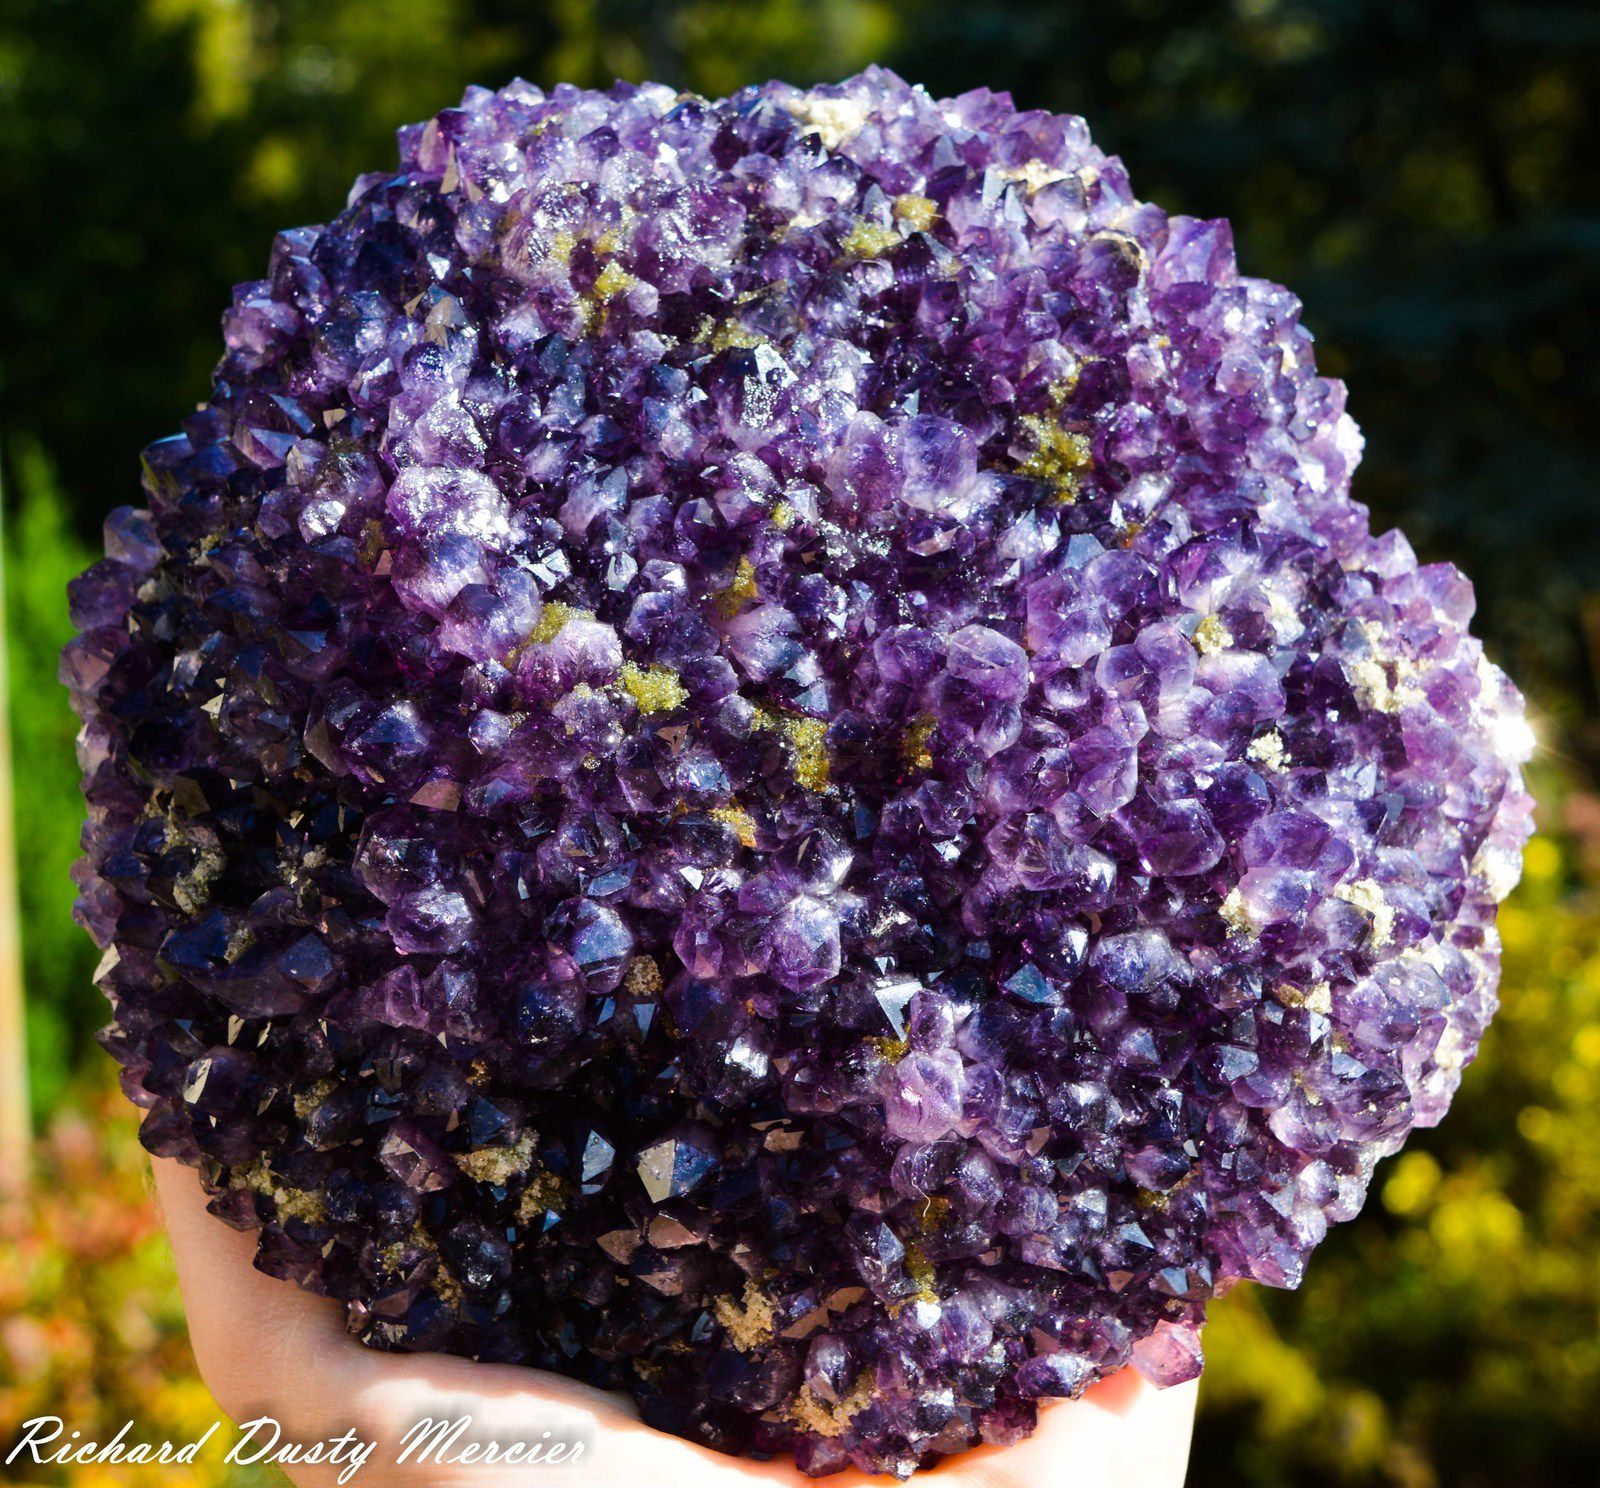 Amethyst Flower from Uruguay (Specimen and Photo: Richard Dusty Mercier)